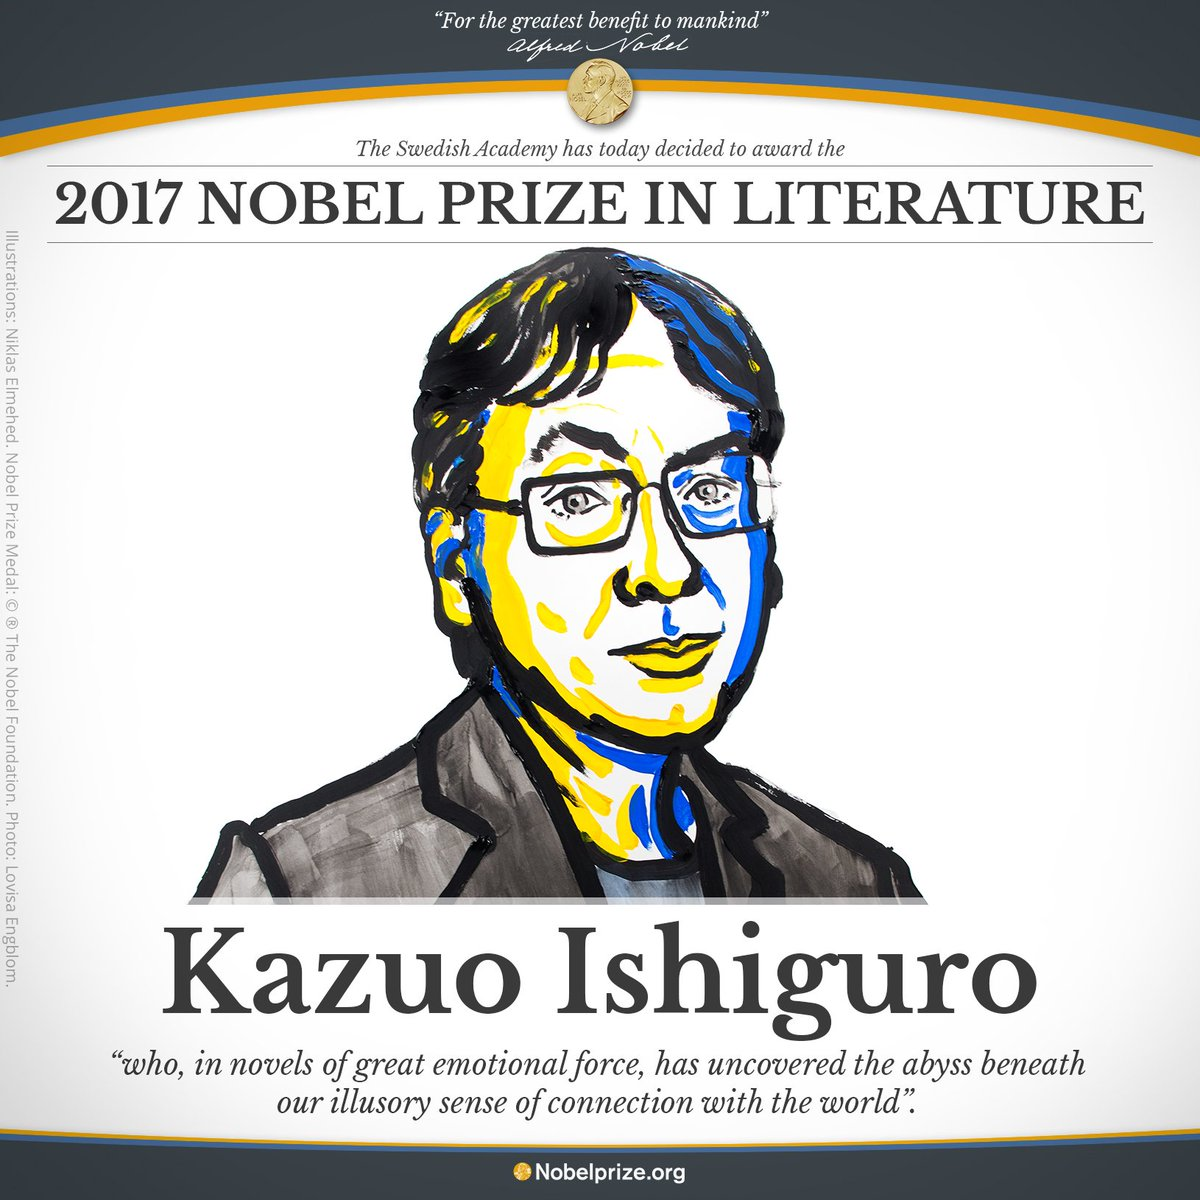 BREAKING NEWS The 2017 #NobelPrize in Literature is awarded to the English author Kazuo Ishiguro